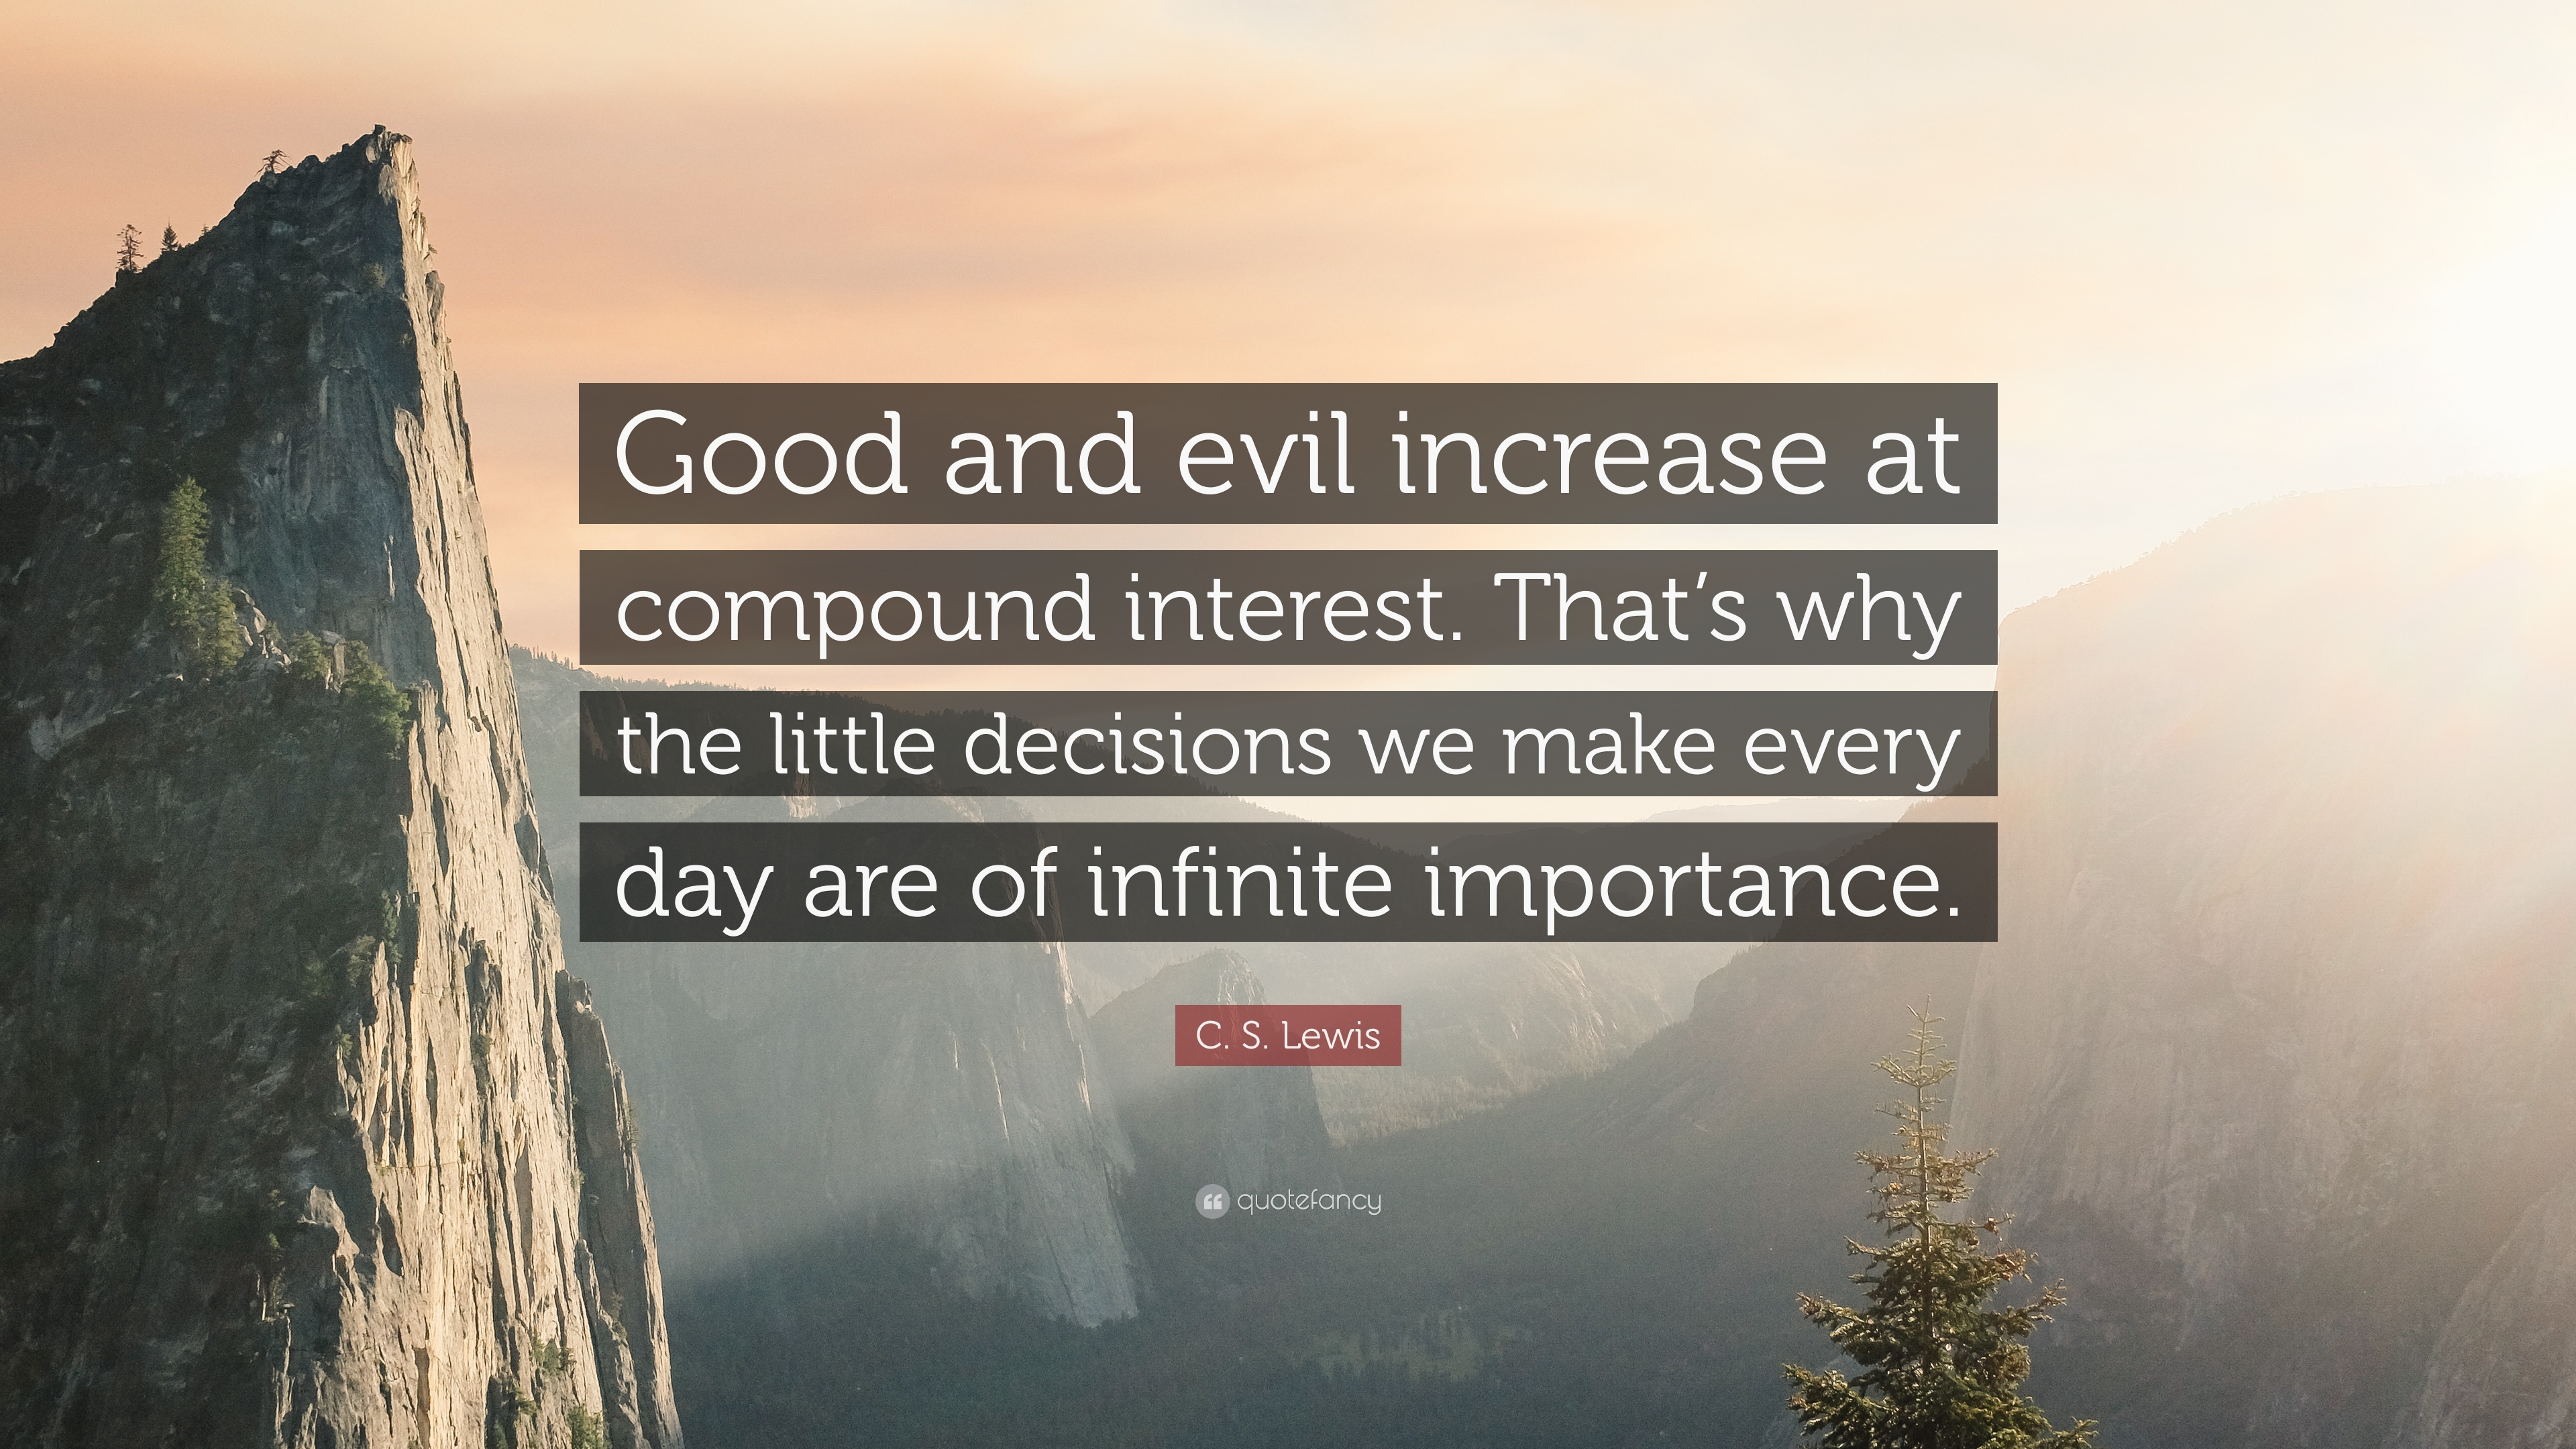 C S Lewis Quote Good And Evil Increase At Compound Interest